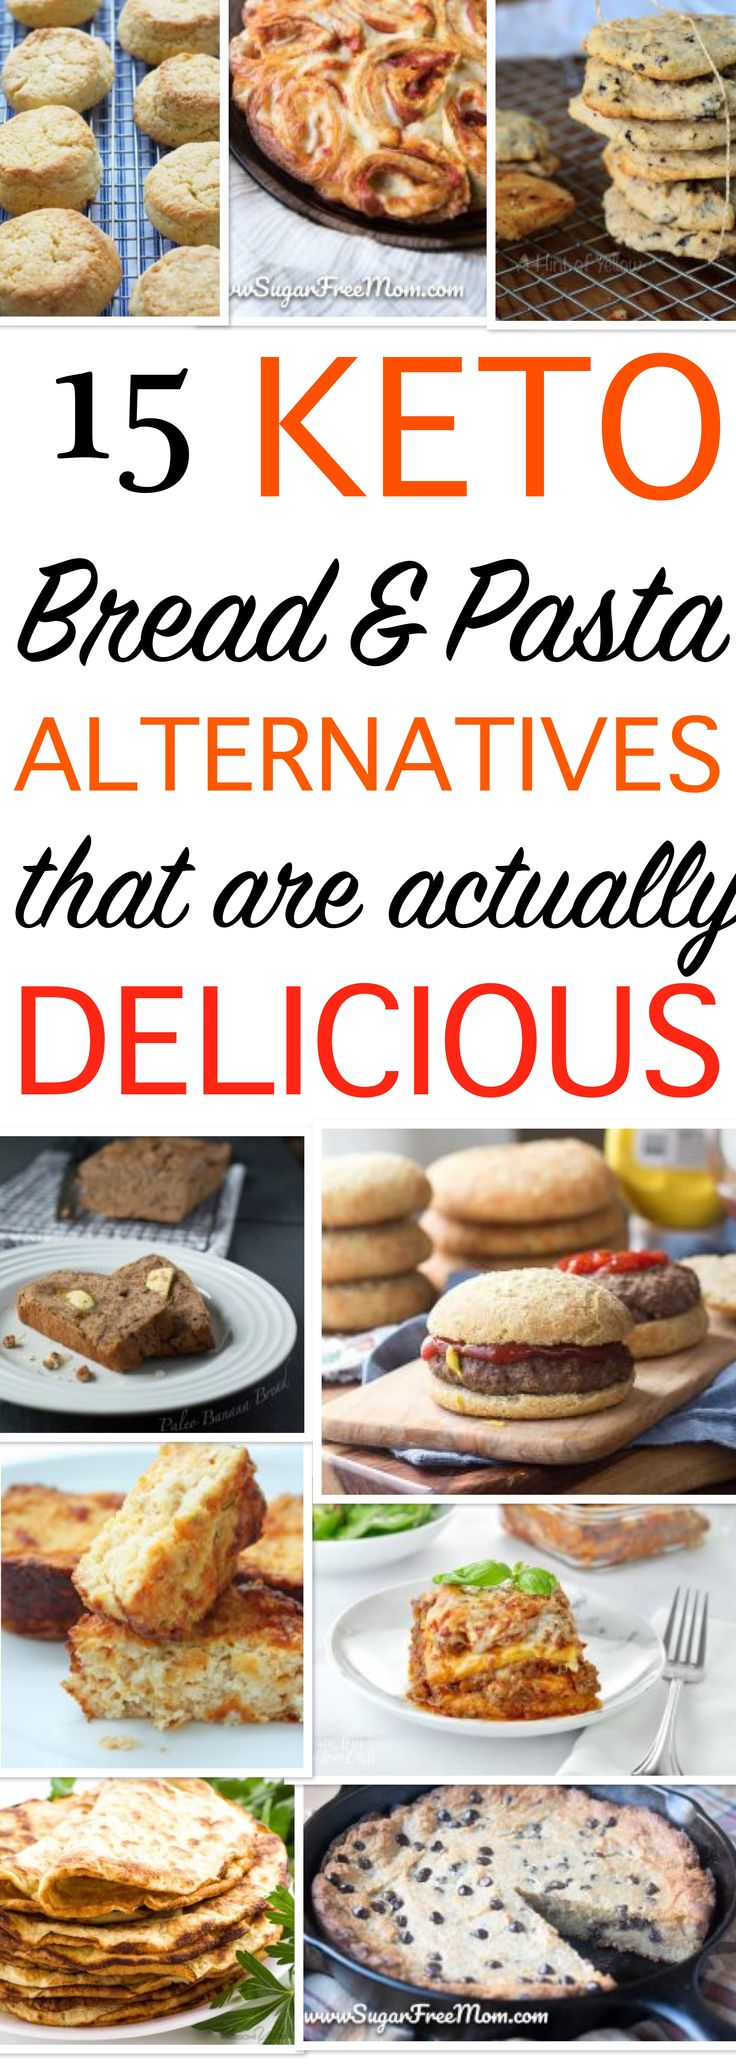 These keto bread, pasta, pancakes and cookie alternatives taste amazing. It's great that there are so many tasty low carb high fat recipes for fast weight loss. #keto #ketobread #ketopasta #ketopancakes #ketogenic #diet #loseweightfast #lowcarb #ketosnacks #ketocookies